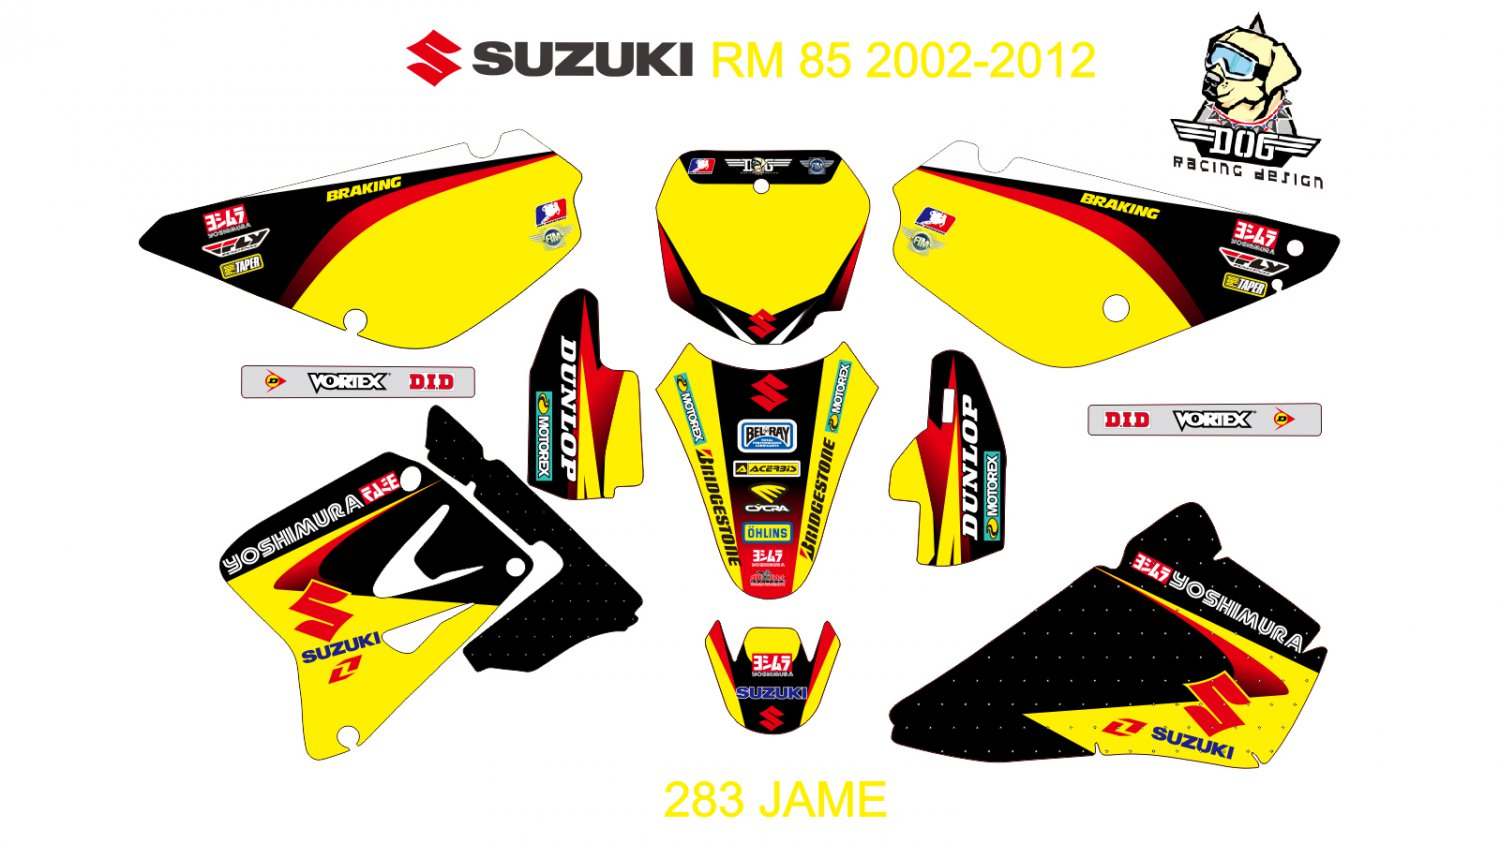 SUZUKI RM 85 2002-2012 GRAPHIC DECAL KIT CODE.283